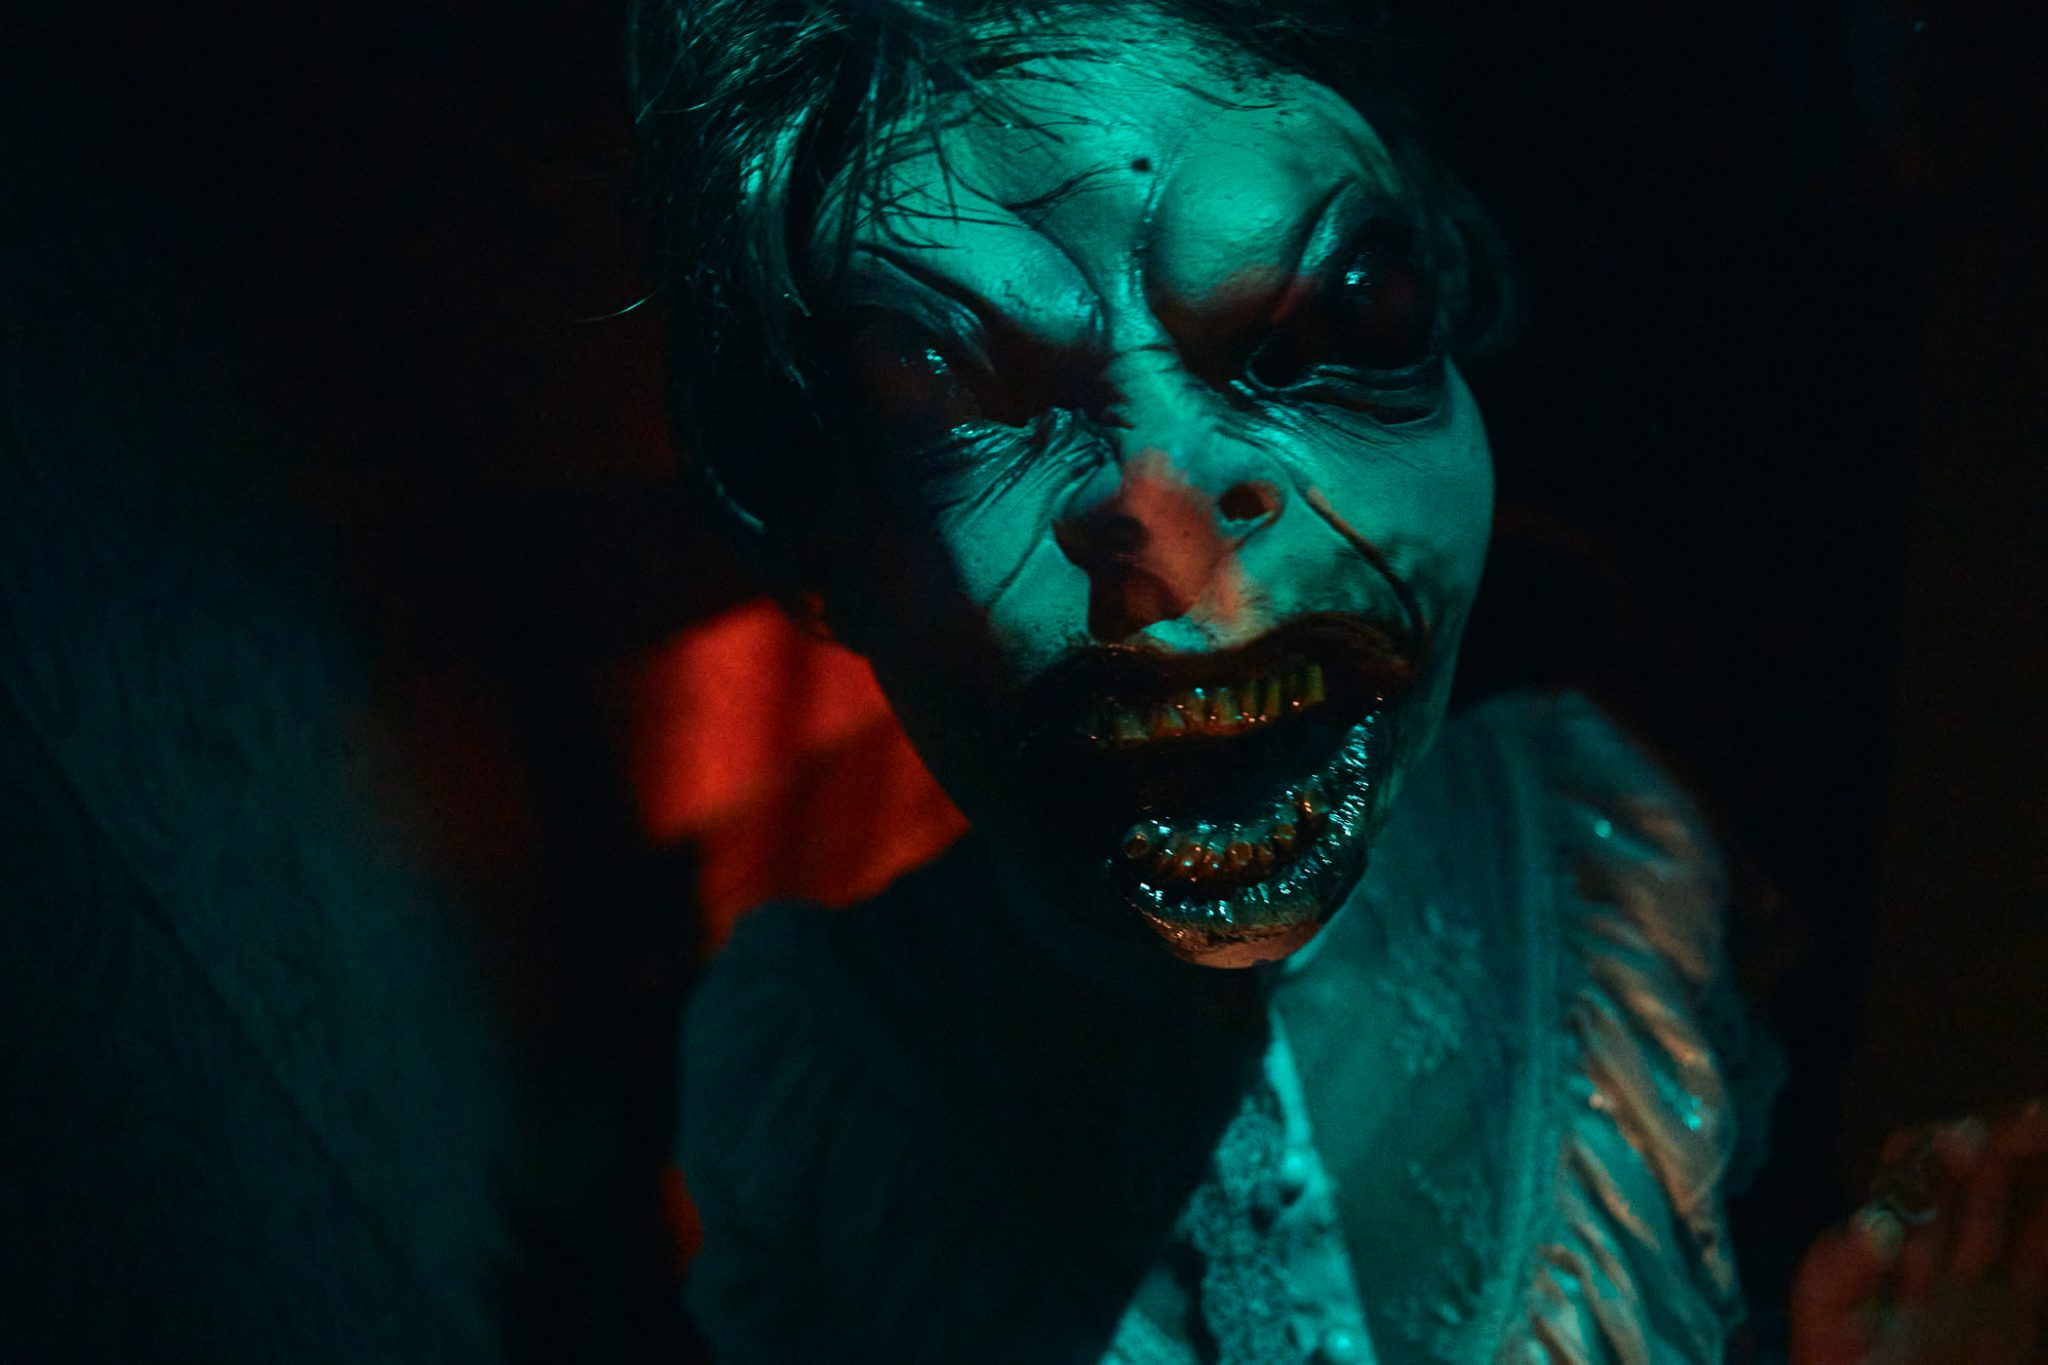 Universal Orlando Announces Five More Original Haunted Houses, Five Scare Zones and Two Shows